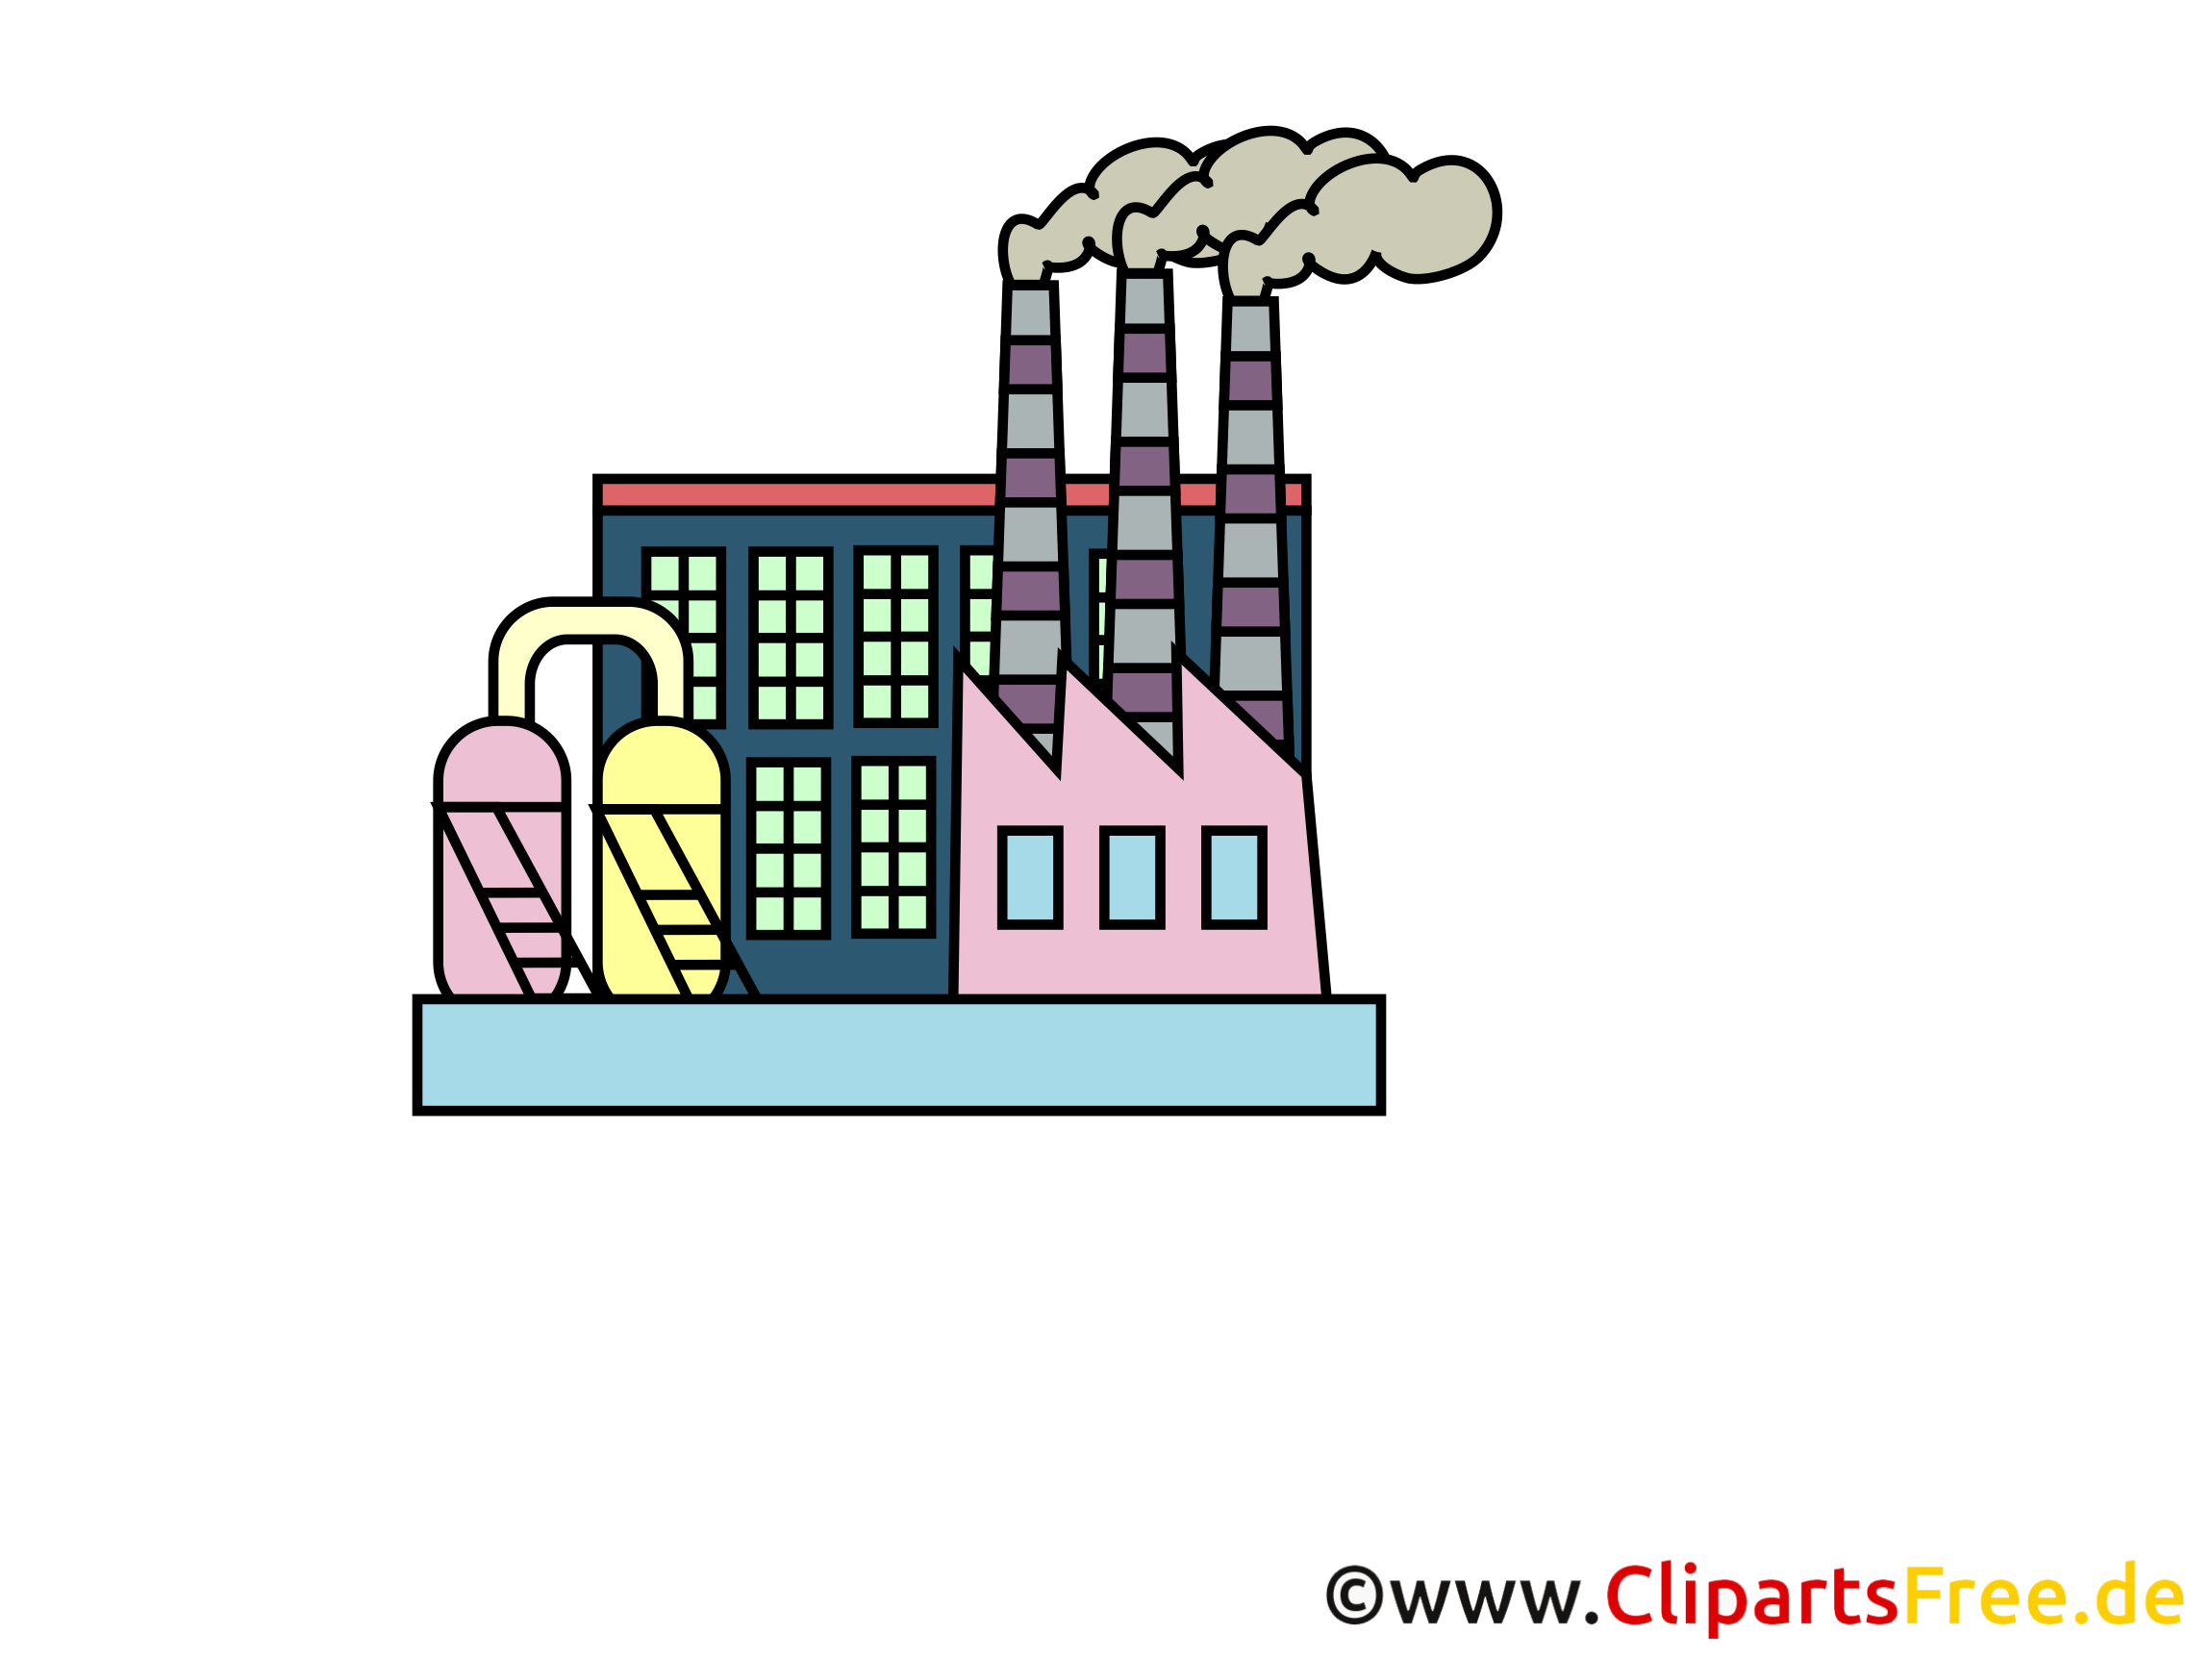 clipart usine gratuit - photo #2